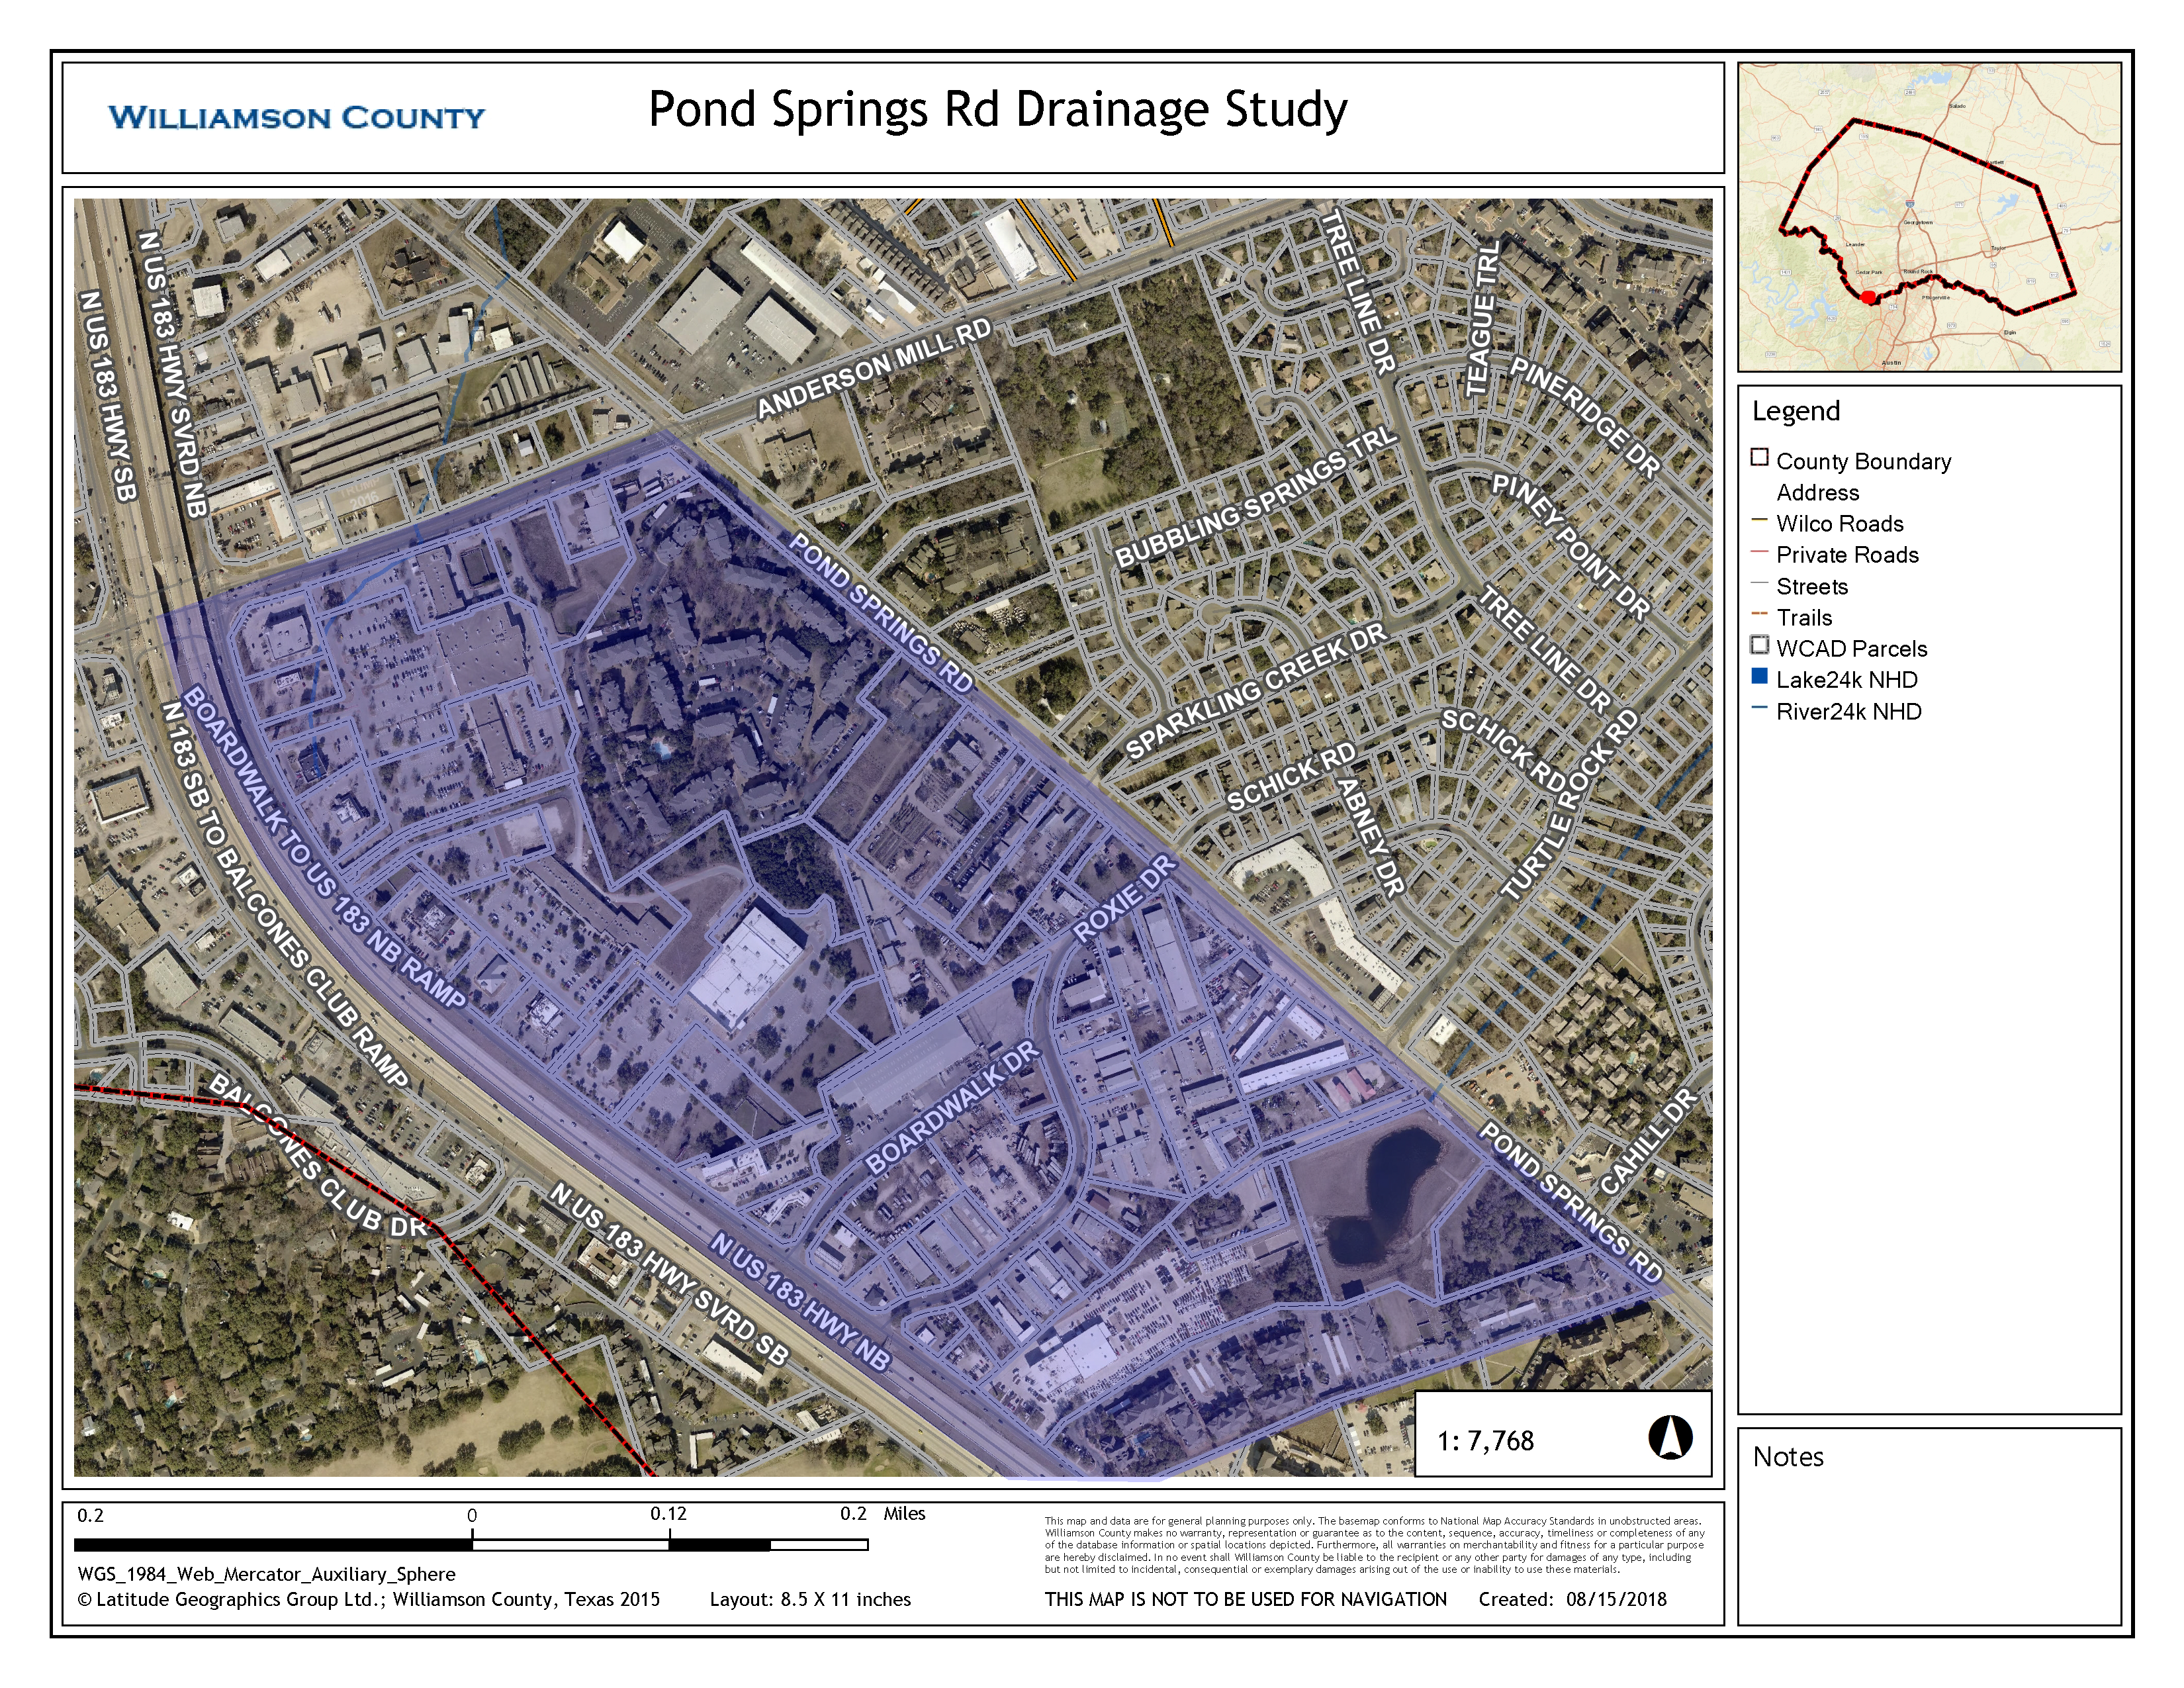 Pond Springs Drainage map